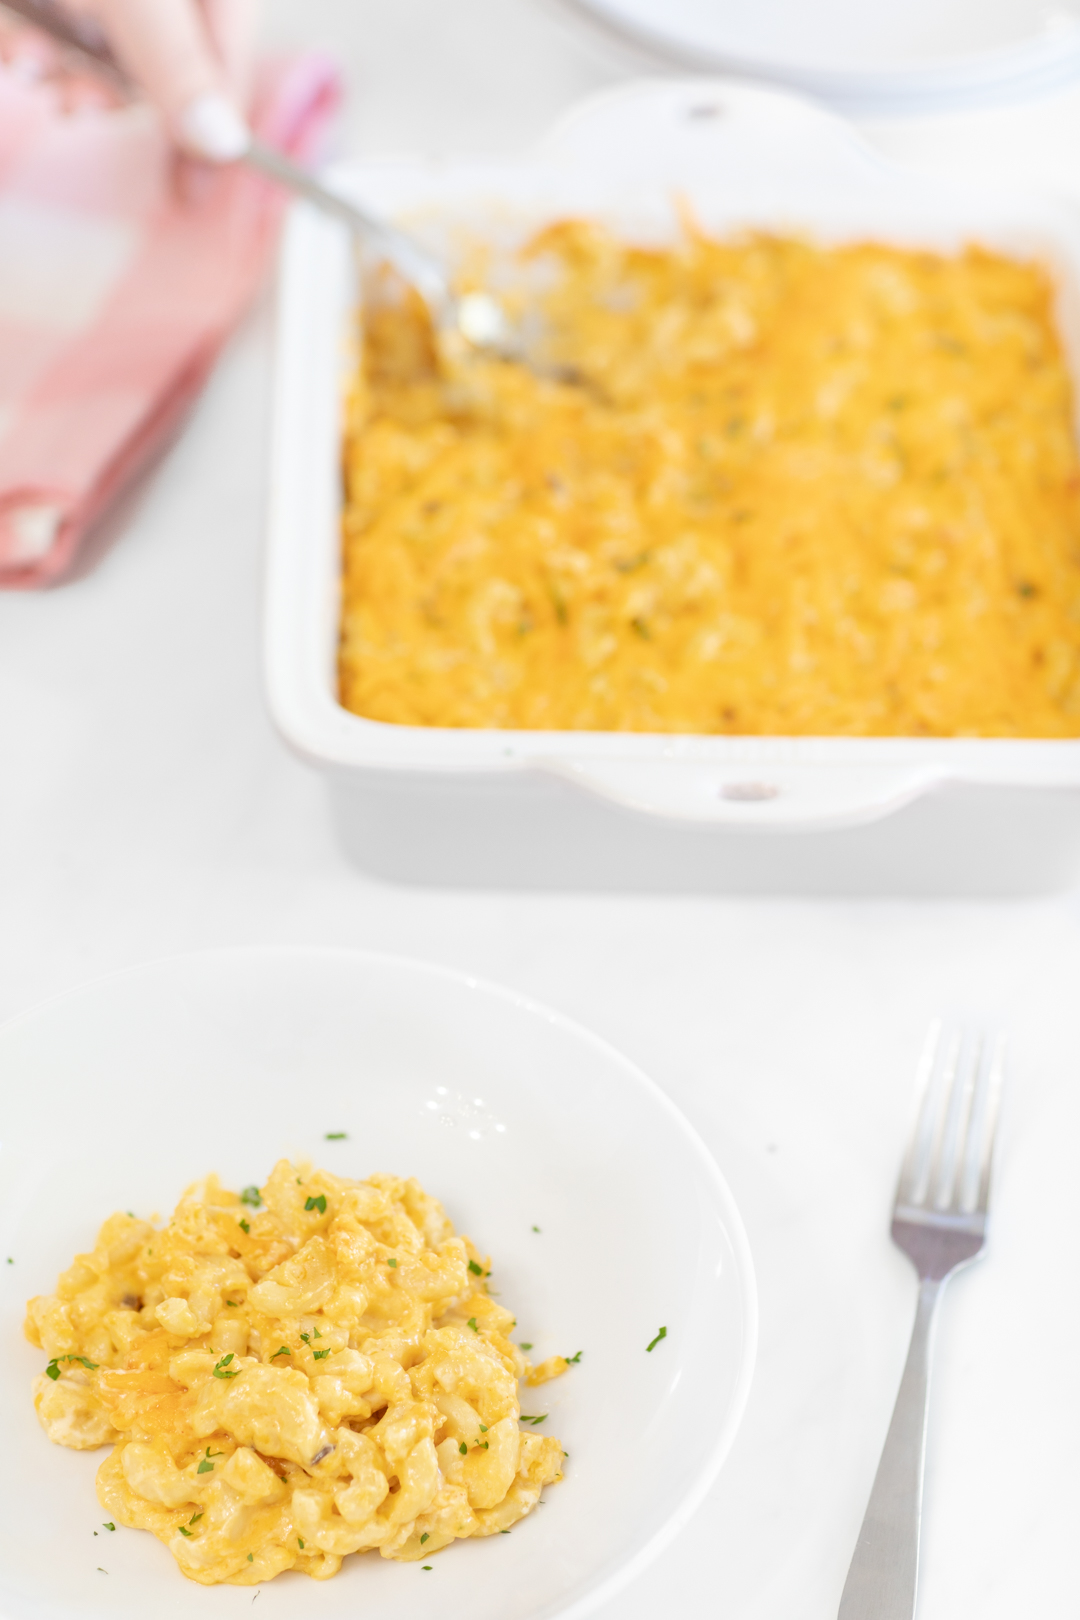 Macaroni and cheese serving dish.